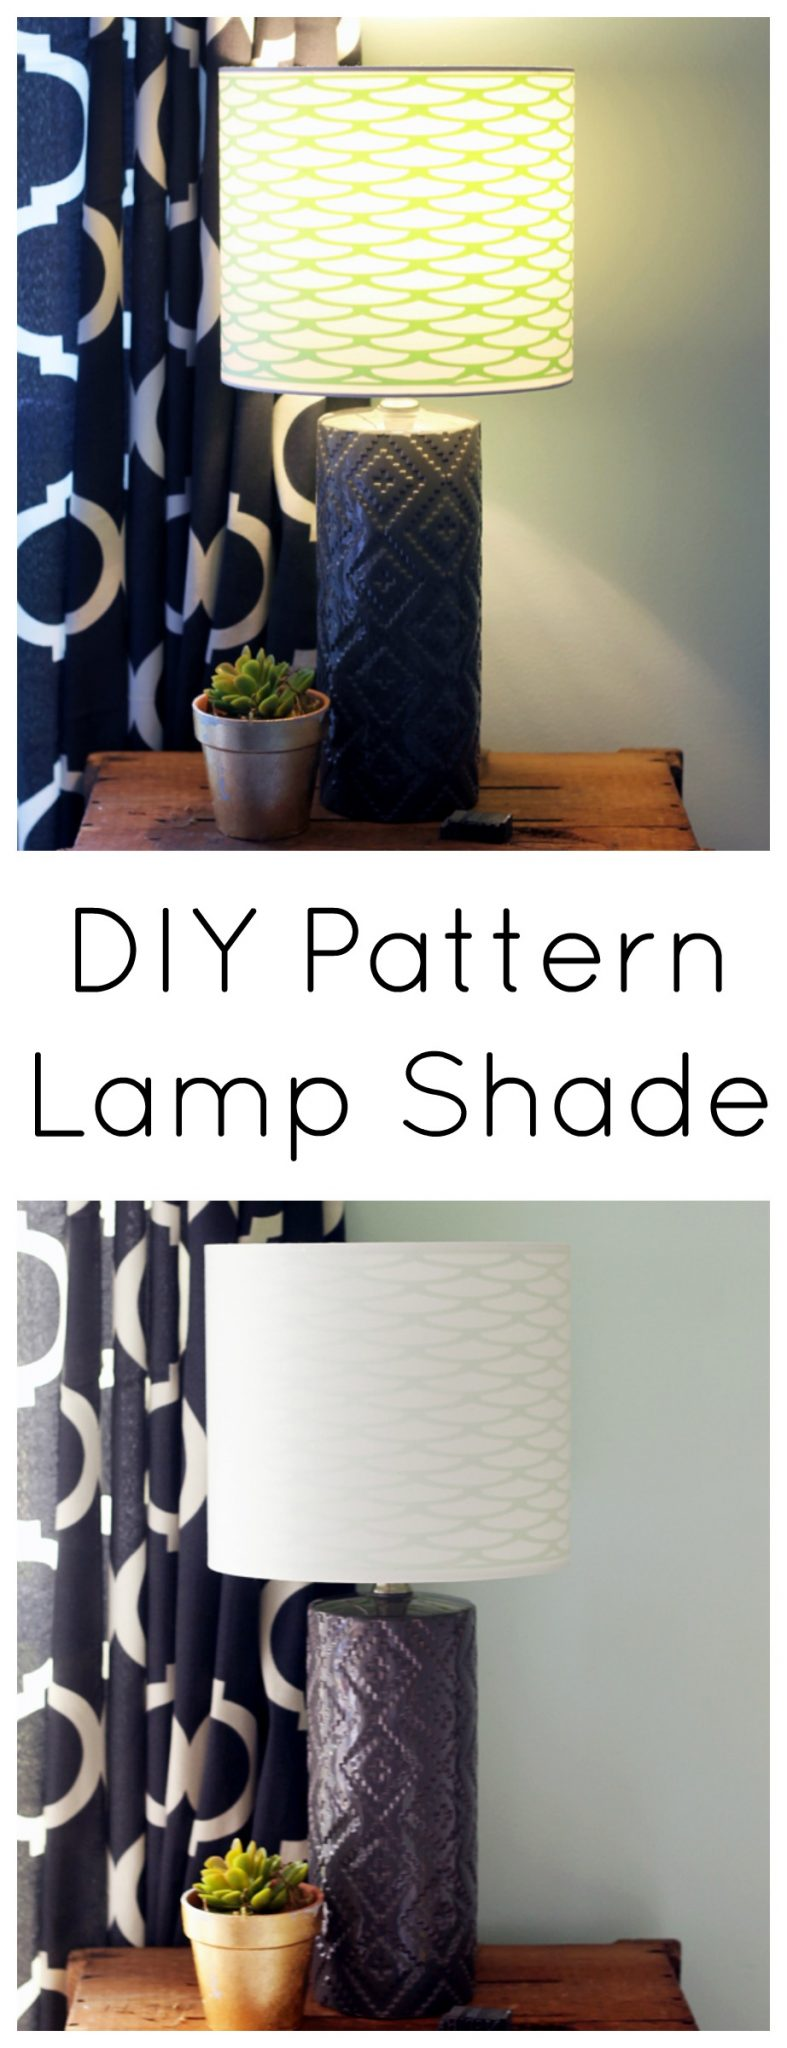 Learn more about adding pattern inside a lamp shade with this simple DIY project! Looks great when the lamp is on and off!